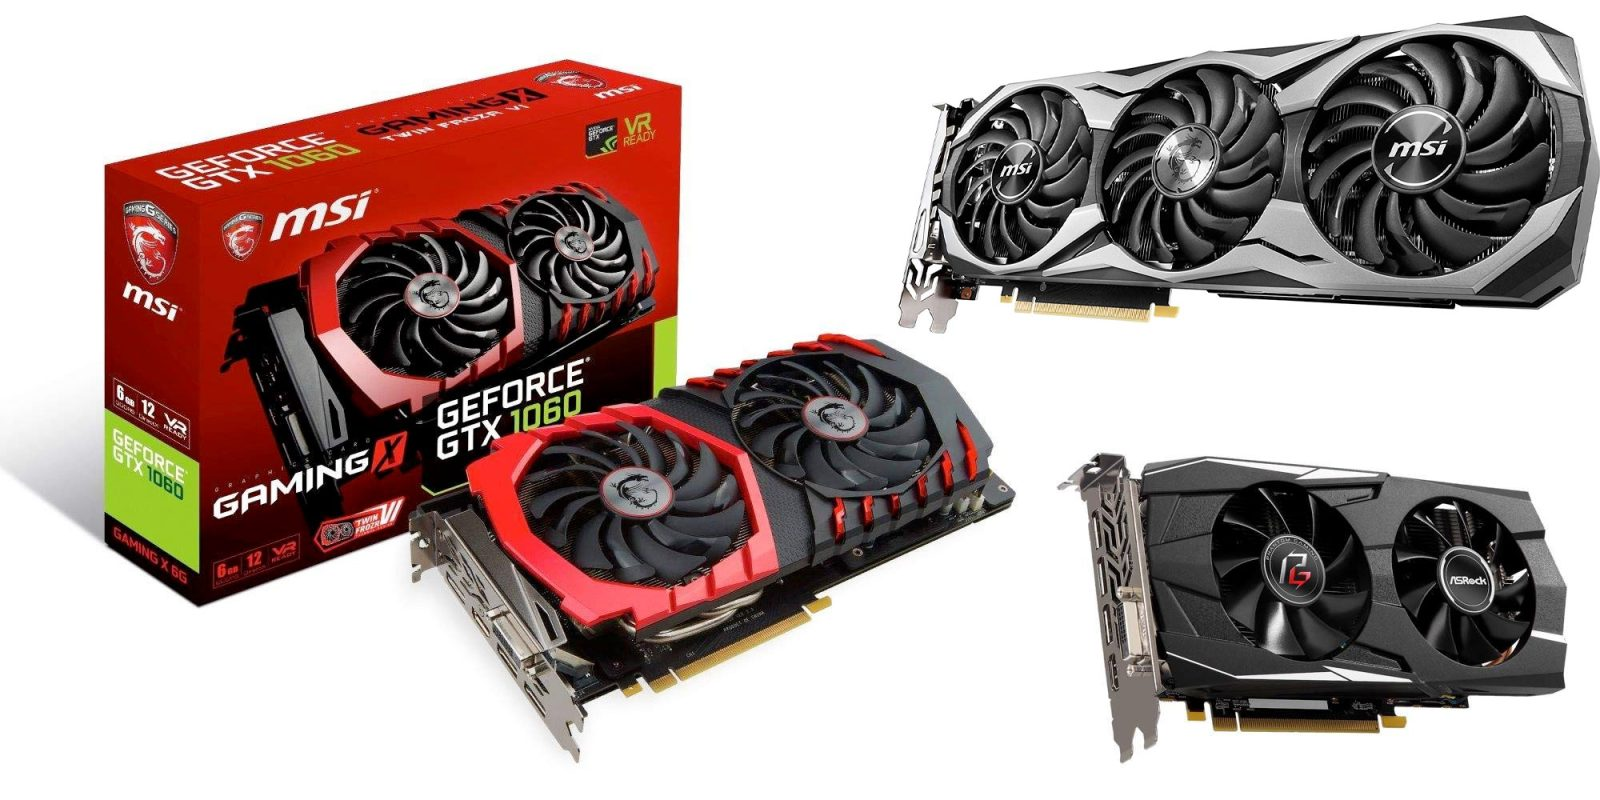 PC Gaming deals: MSI GTX 1060 6GB from $200, MSI RTX 2070